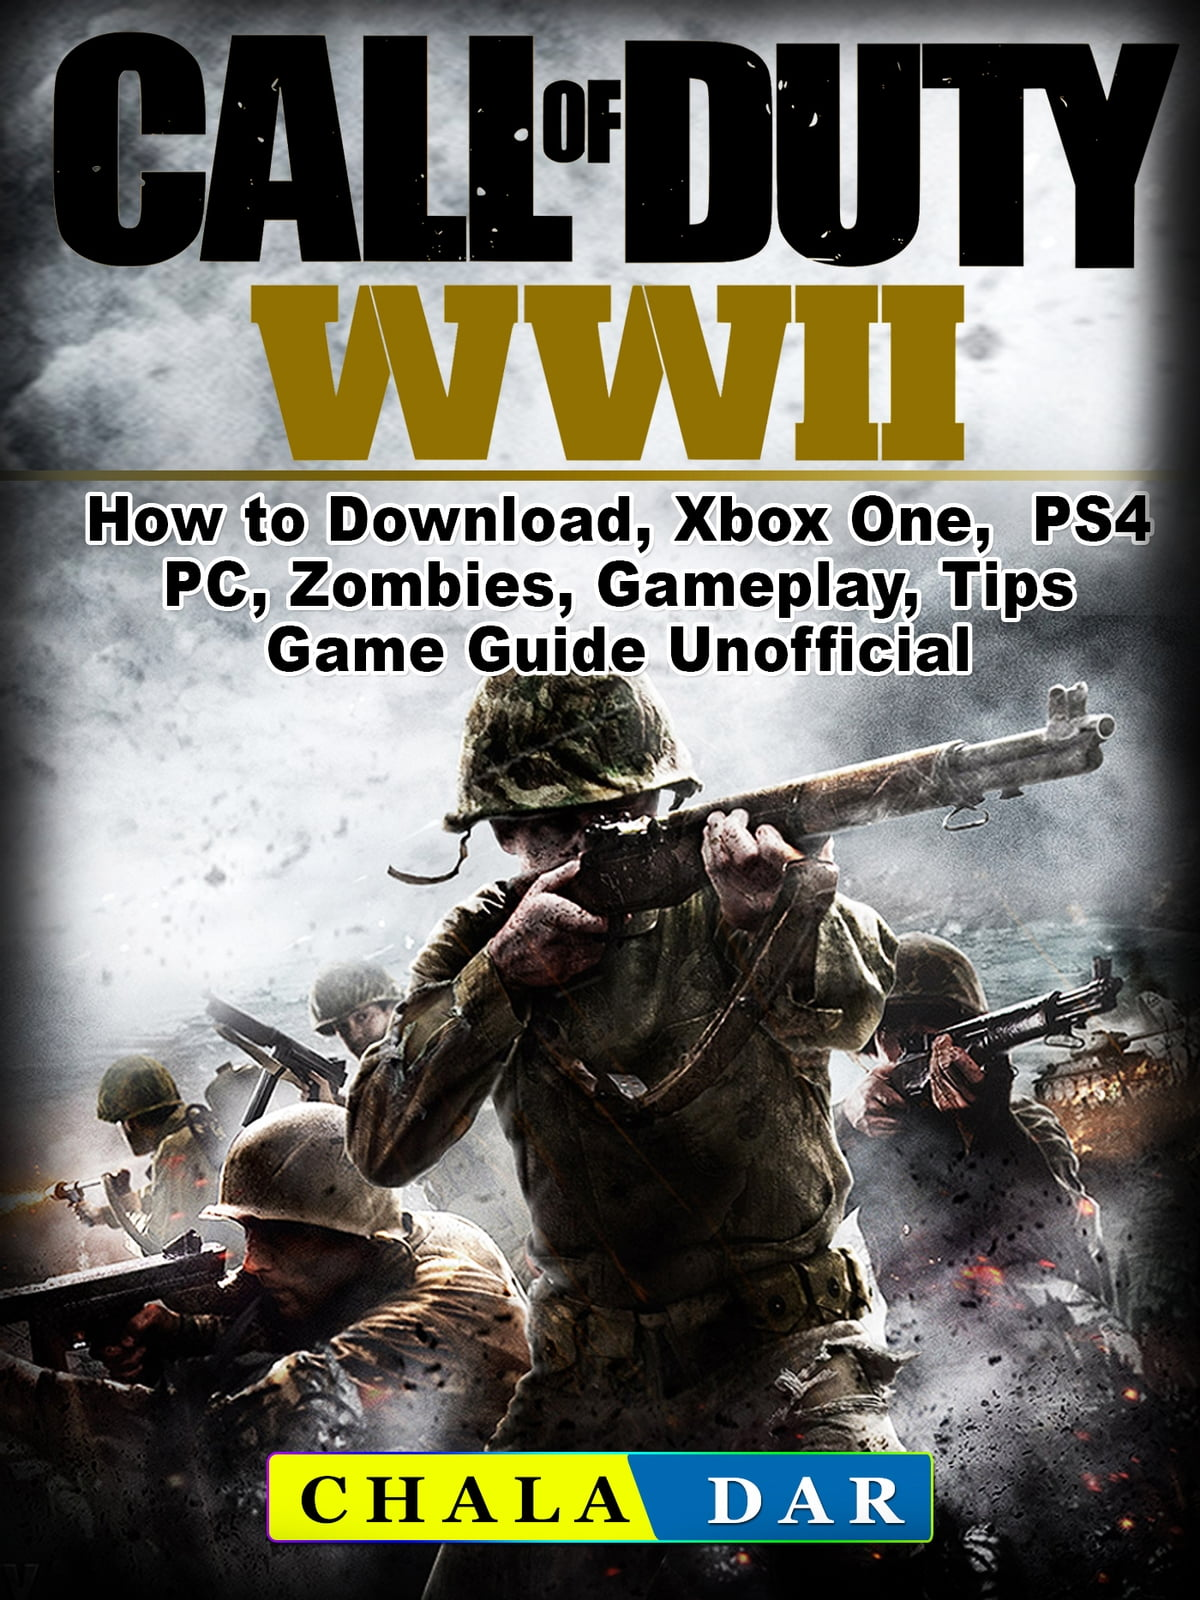 Call of Duty WWII How to Download, Xbox One, PS4, PC, Zombies, Gameplay,  Tips, Game Guide Unofficial ebook by Chala Dar - Rakuten Kobo